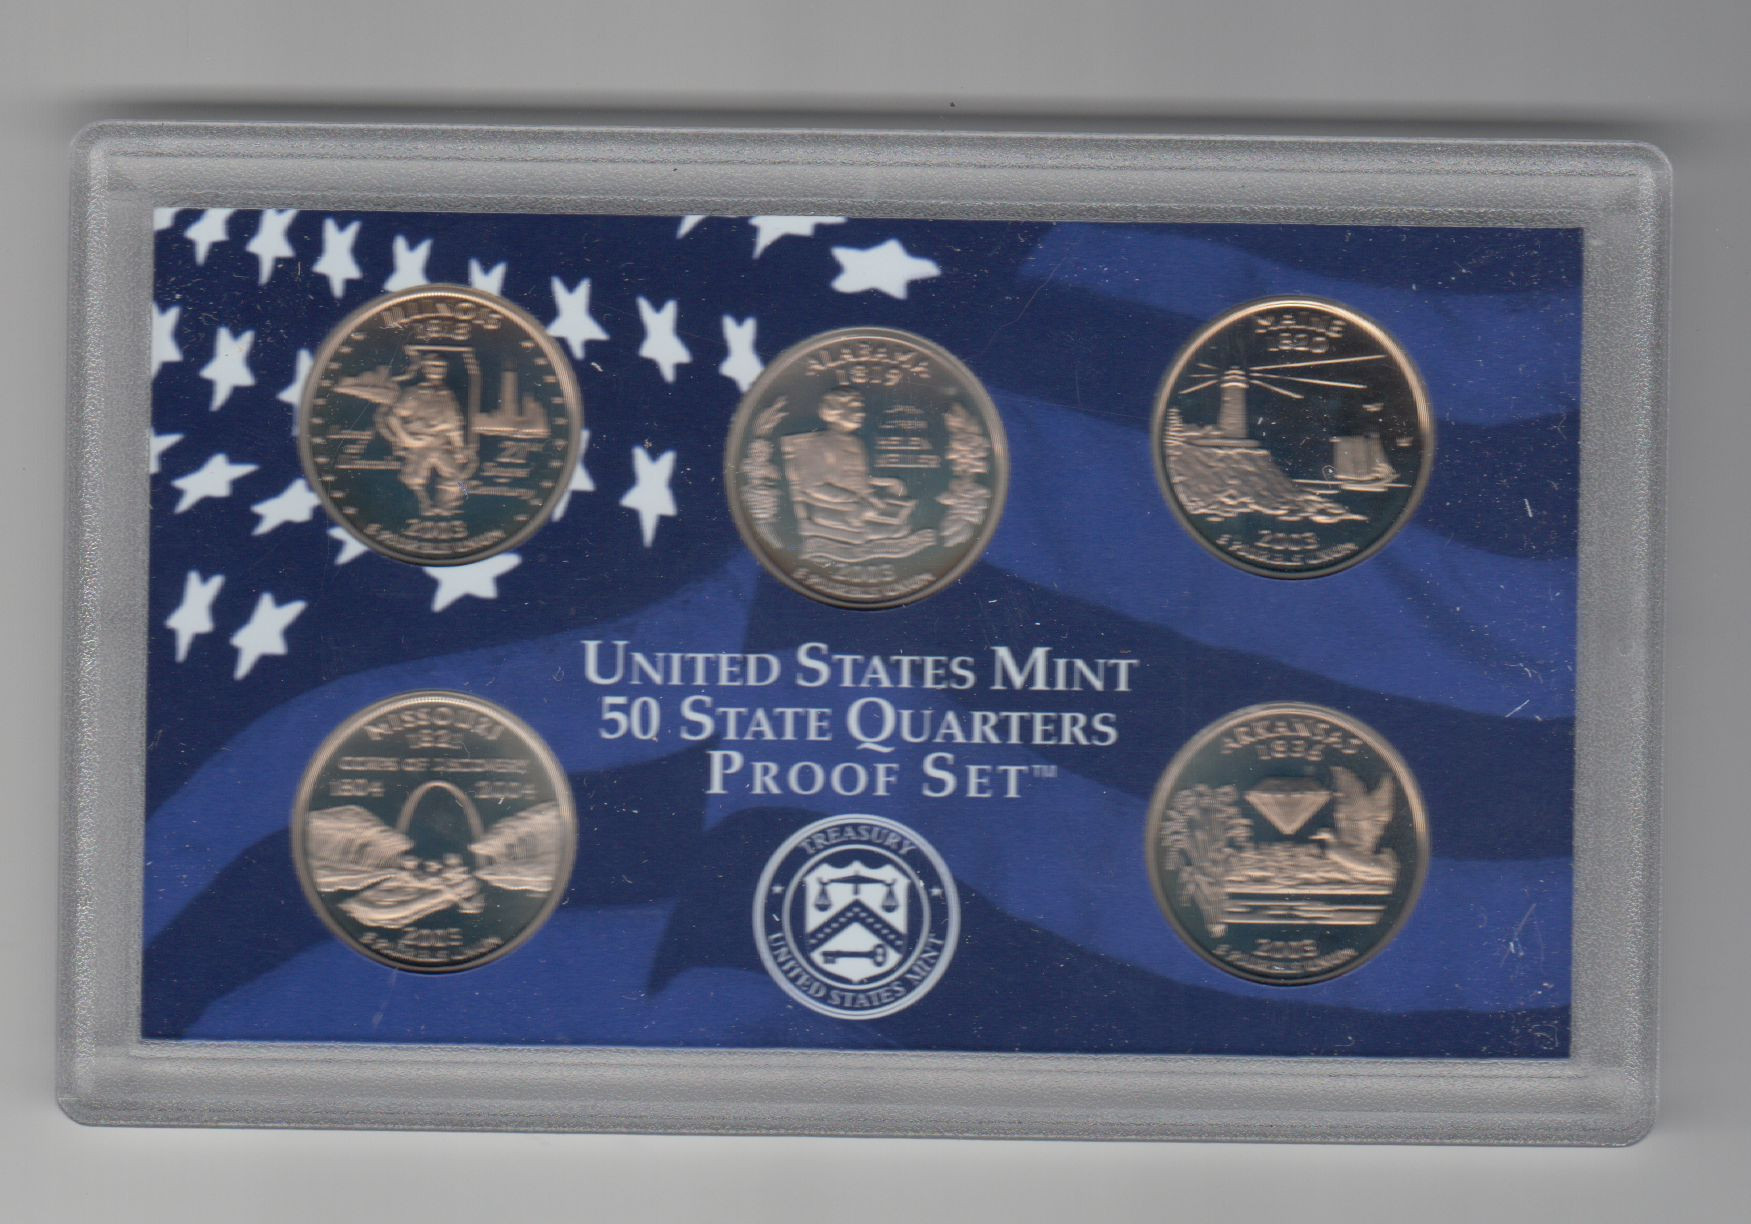 Elegant Value Of 5 Coins 50 State Quarters Proof Set In Box with State Quarter Set Value Of Unique 5 Coins 50 State Quarters Proof Set Us Mint 2000 State Quarter Set Value